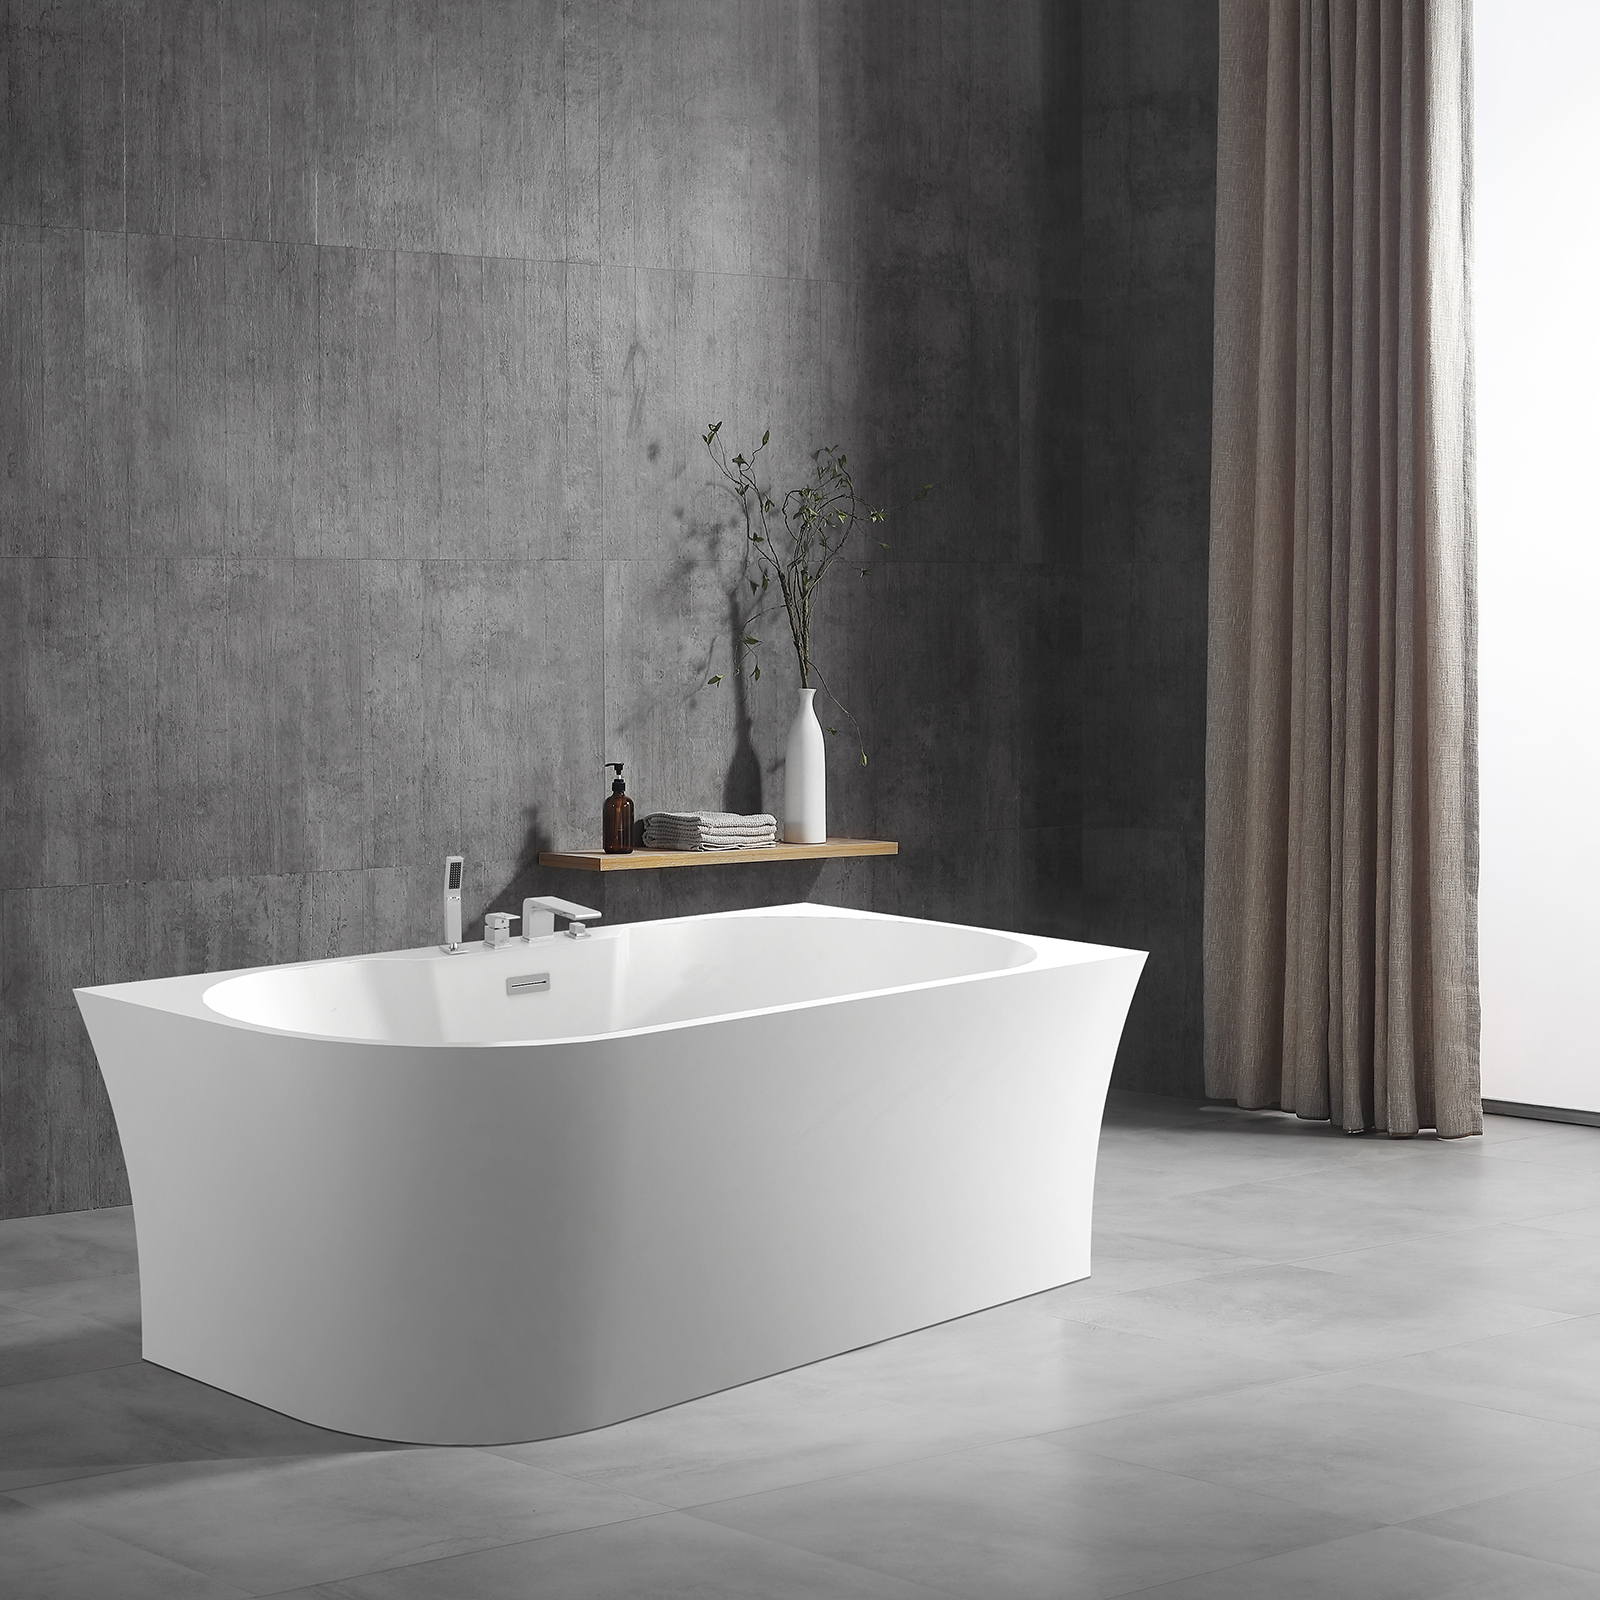 Freestandung acrylic bathtub NOVA CORNER PLUS - white - right installation - 170 x 78 cm - optional tap